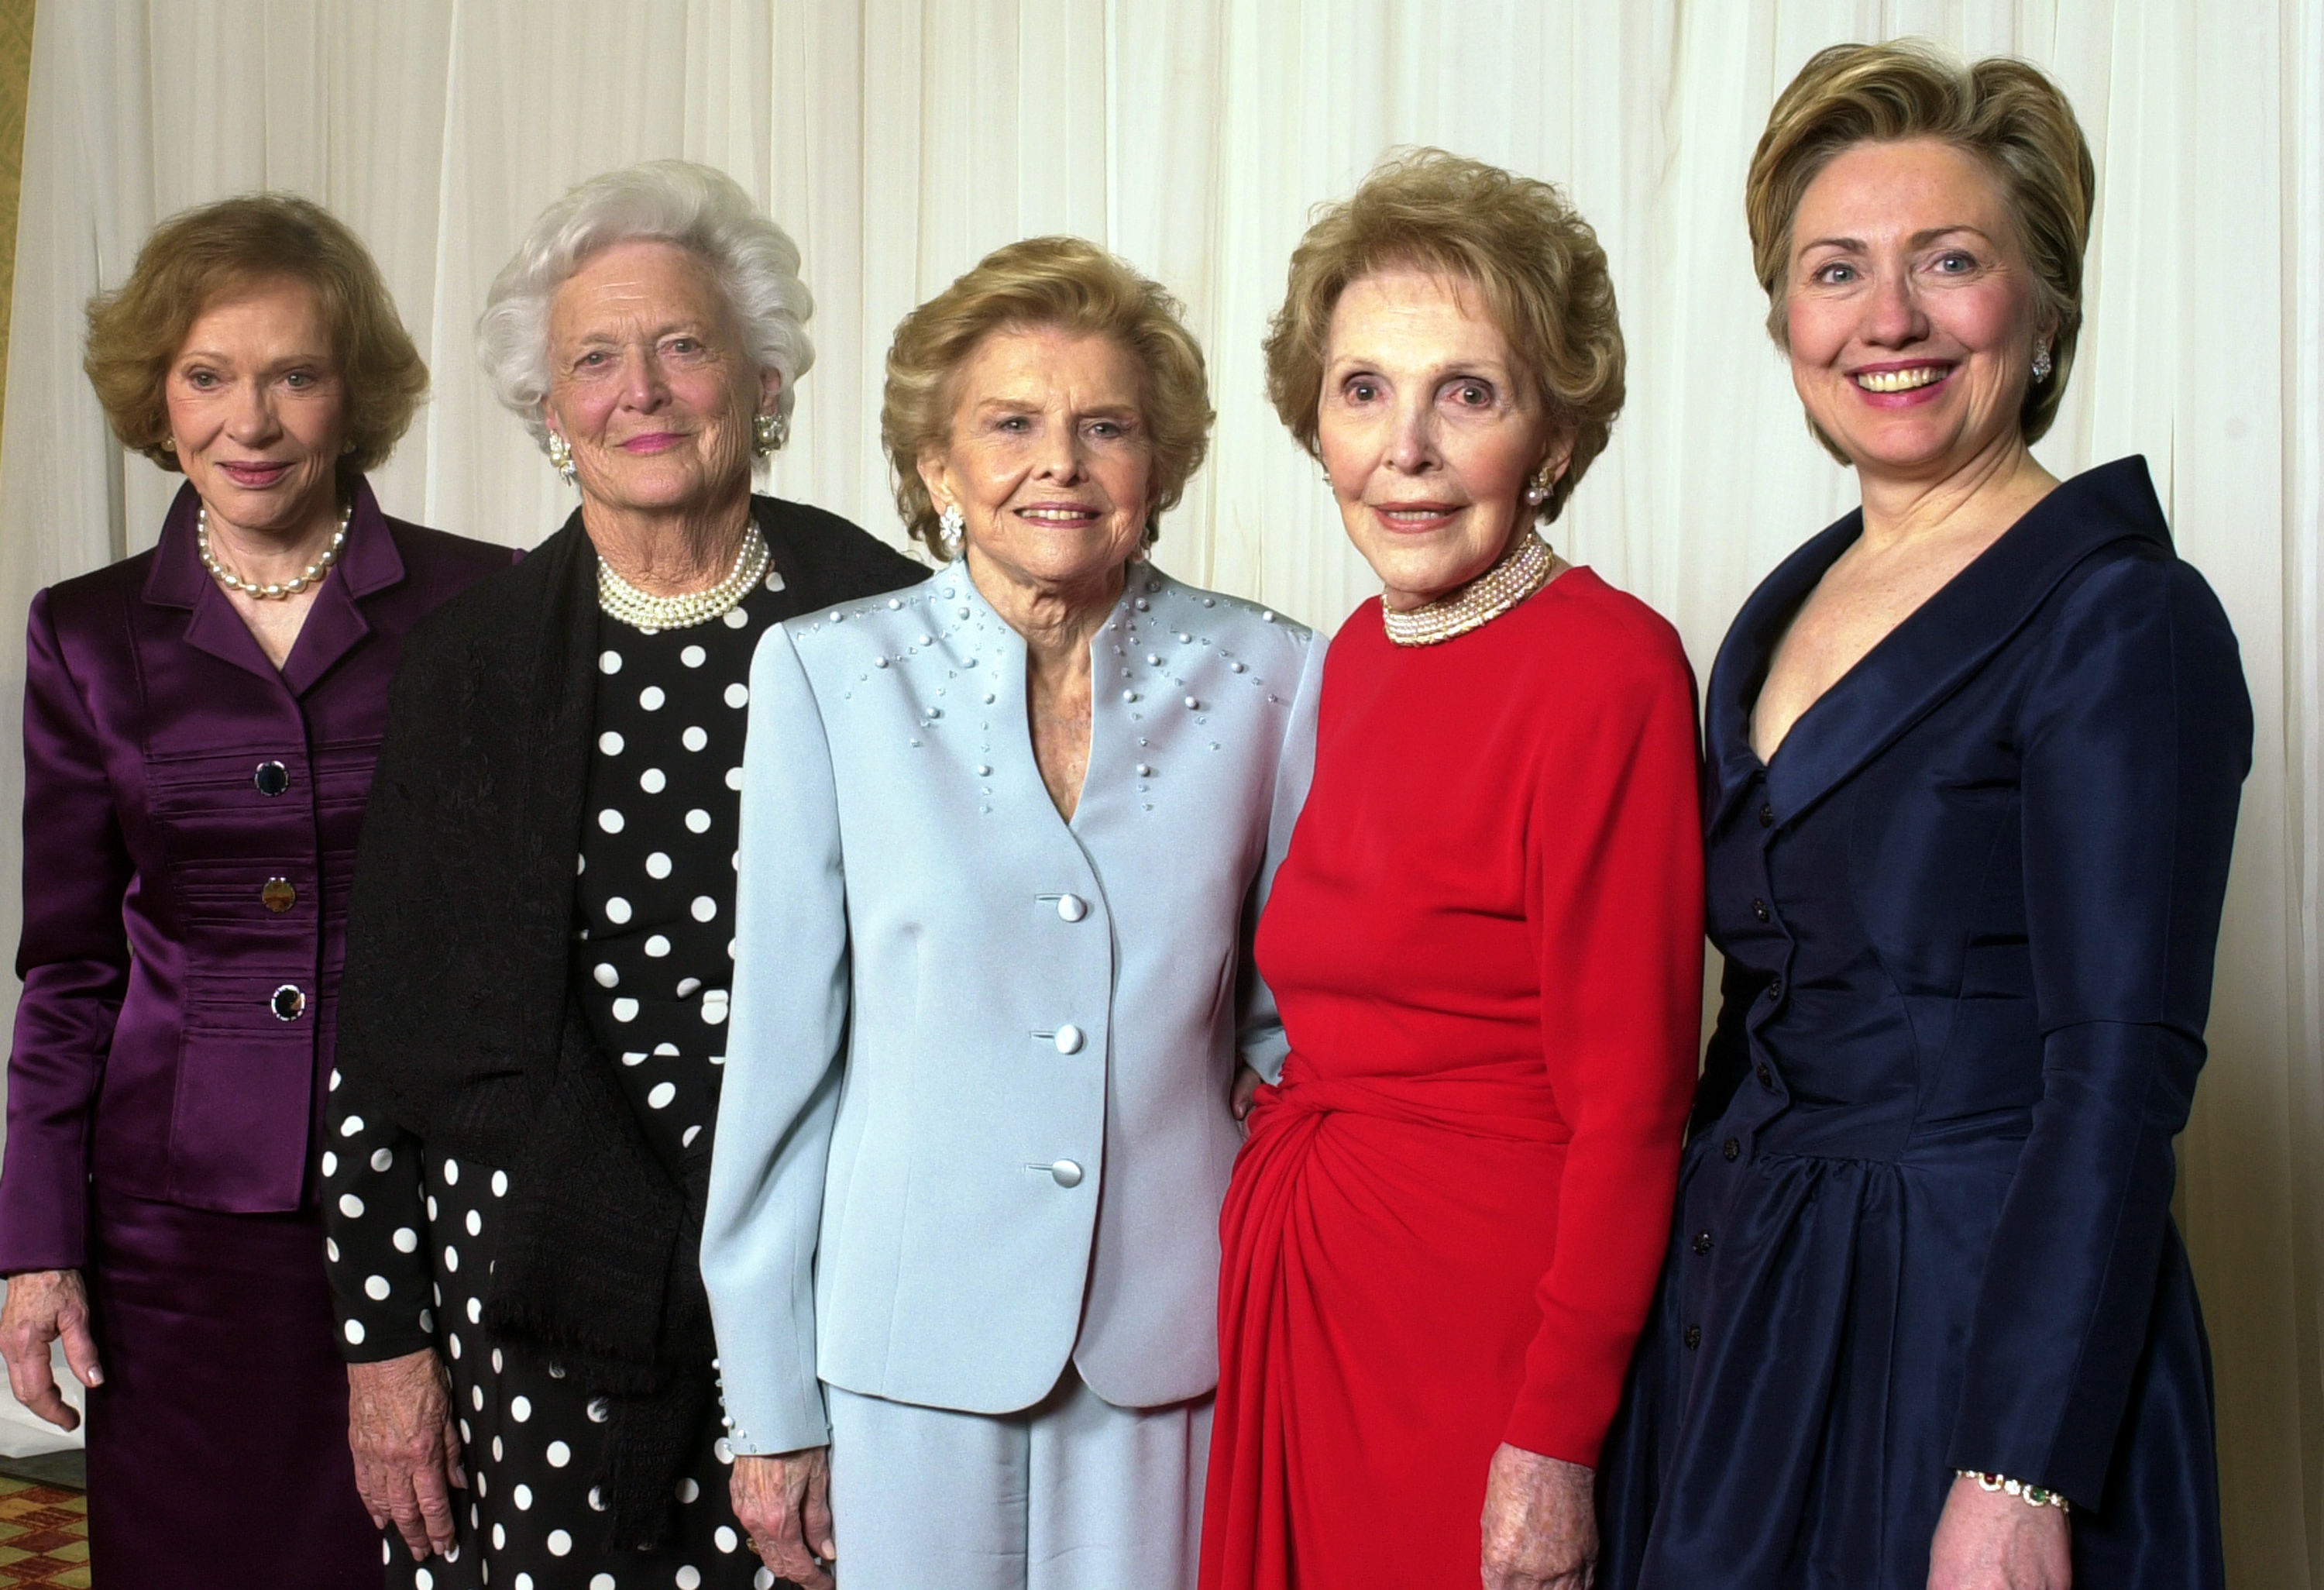 Former first ladies get together for a group photo at a gala 20th anniversary fundraising event saluting Betty Ford and the Betty Ford Center in Indian Wells, Calif. on Jan. 17, 2003.  From left are Rosalynn Carter, Barbara Bush, Betty Ford, Nancy Reagan and Sen. Hillary Rodham Clinton.